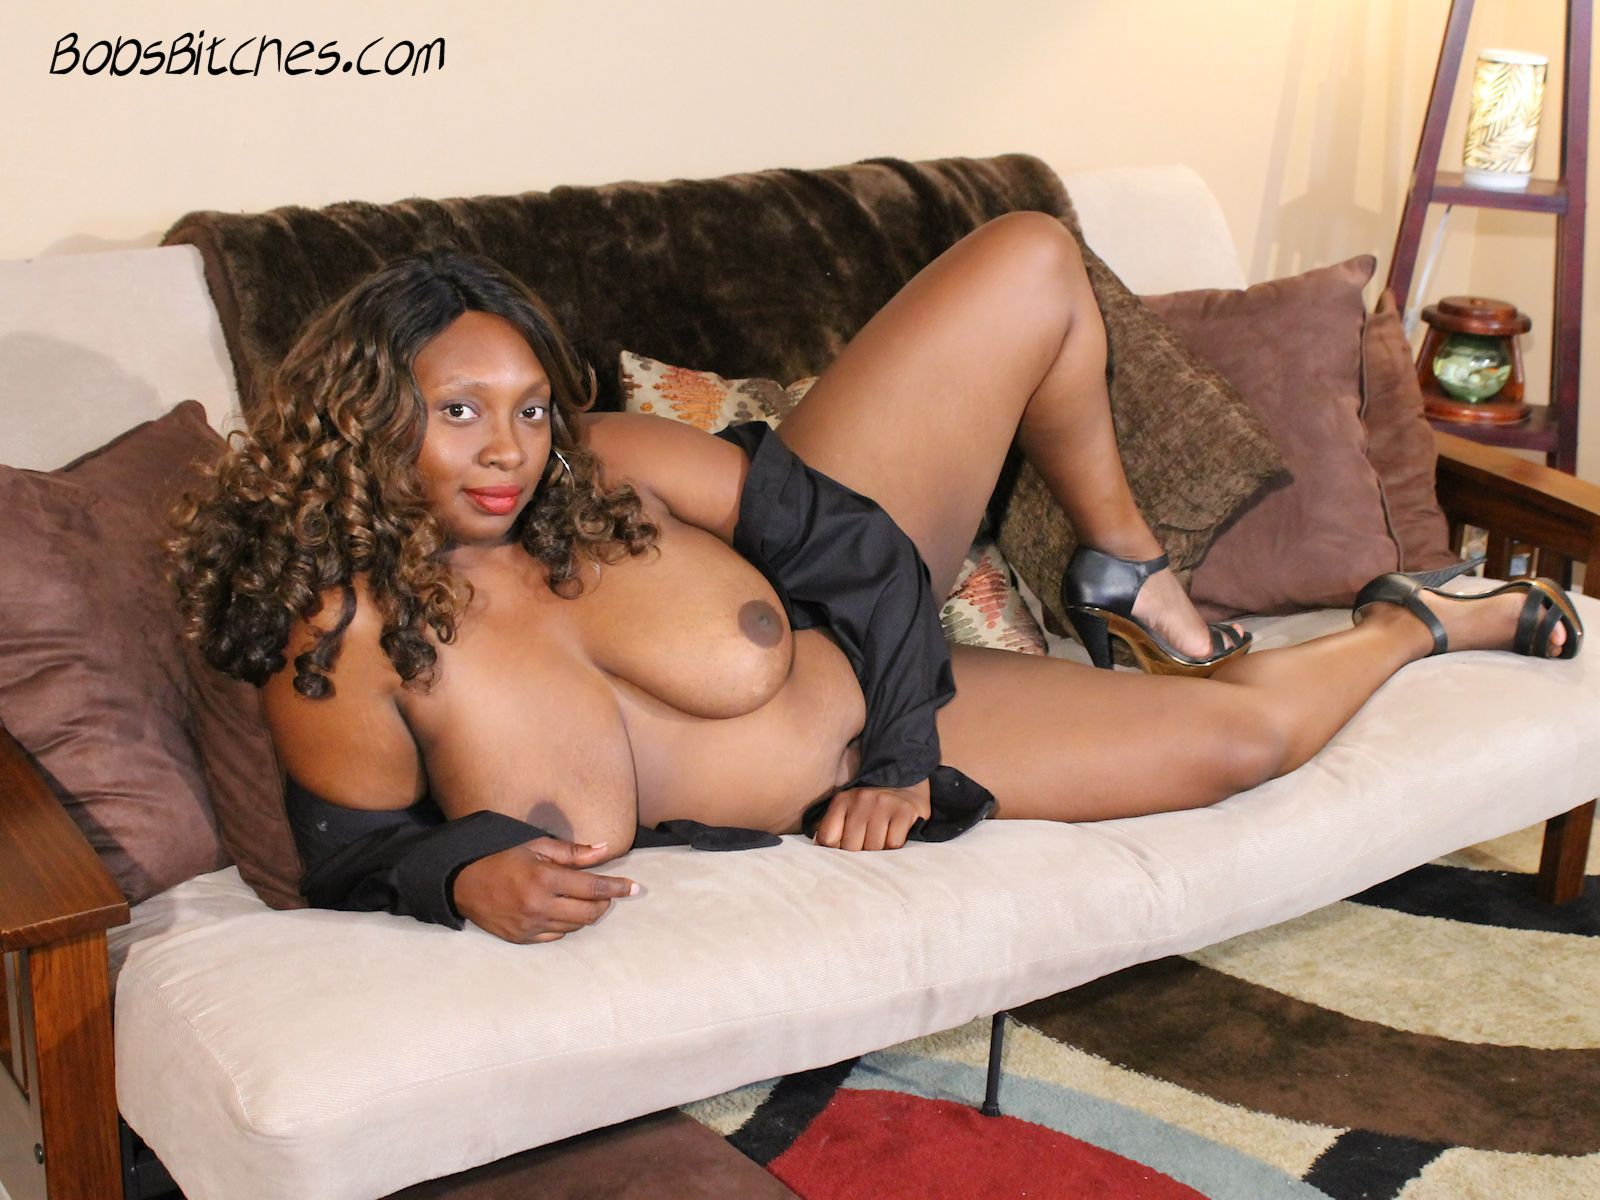 All natural, big tit ebony milf, Symone Banks  reveals her voluptuous body.